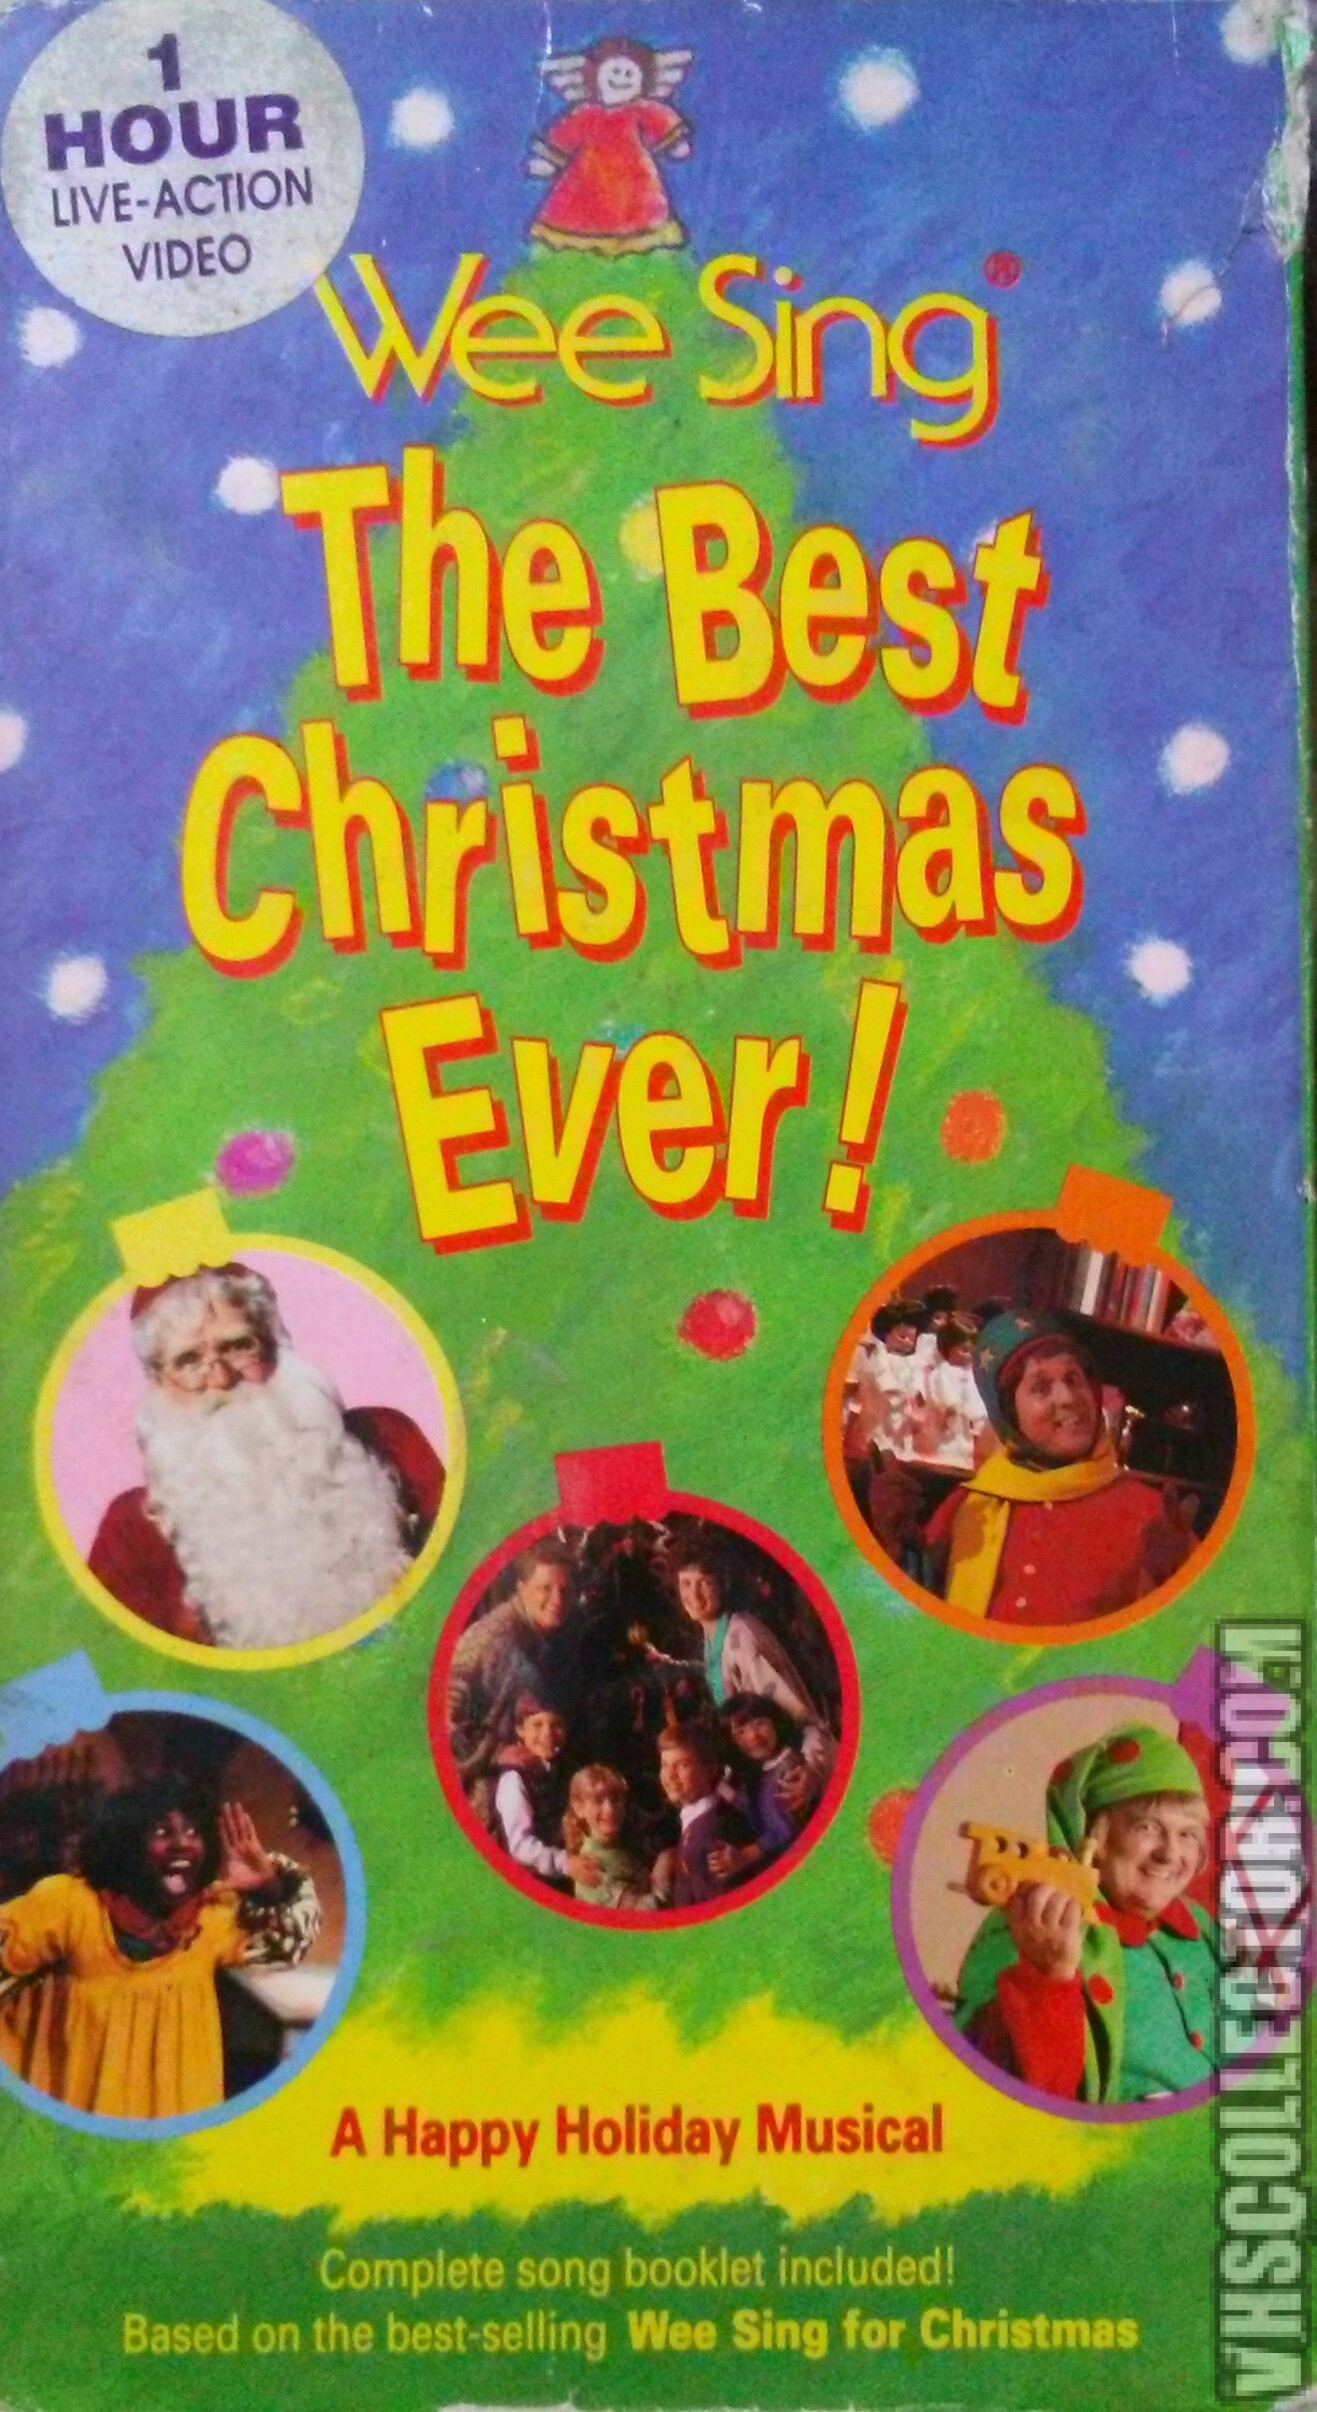 Wee Sing The Best Christmas Ever Vhs.Wee Sing The Best Christmas Ever Vhscollector Com